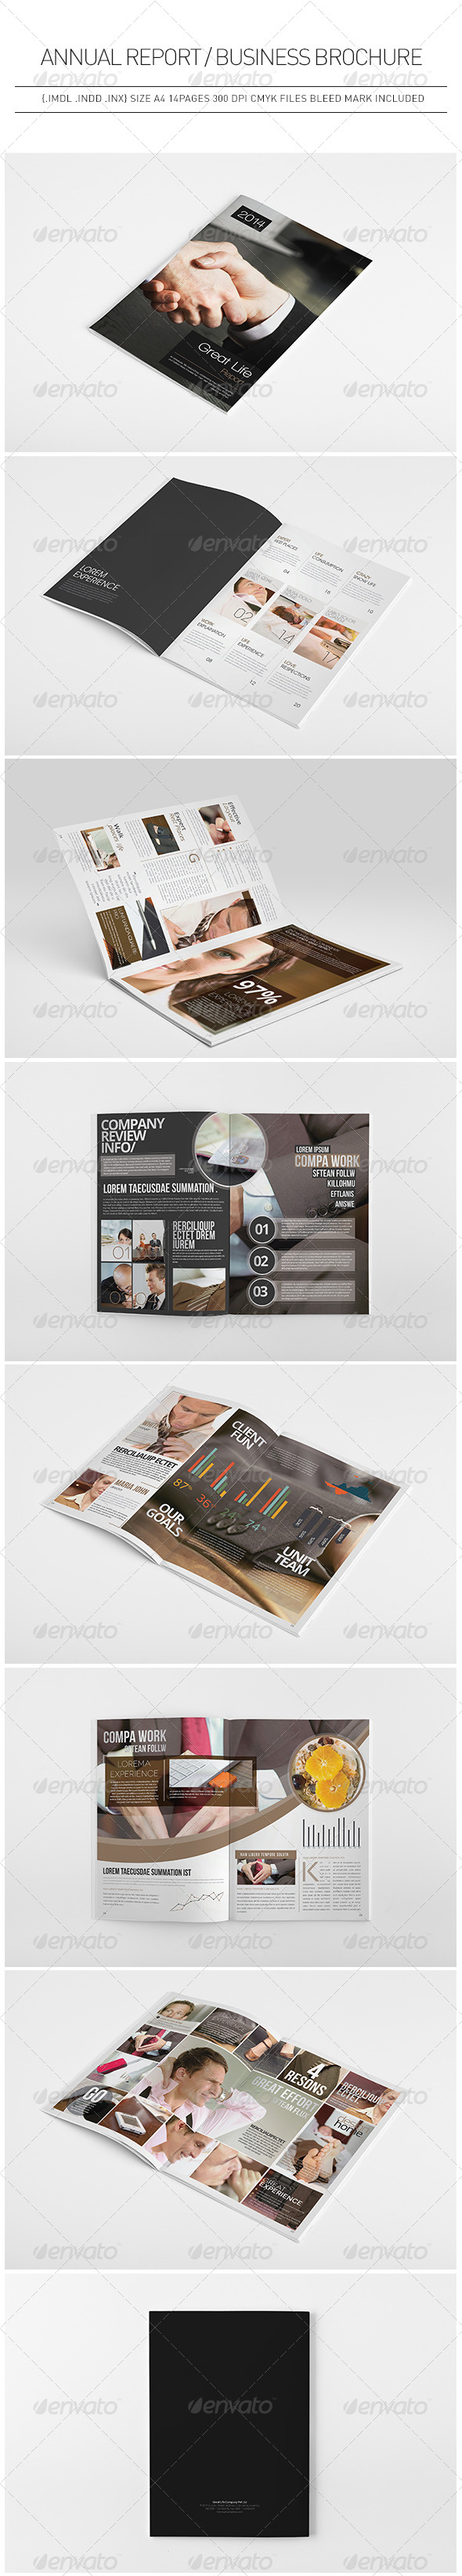 Annual Report / Business Brochure - Corporate Brochures